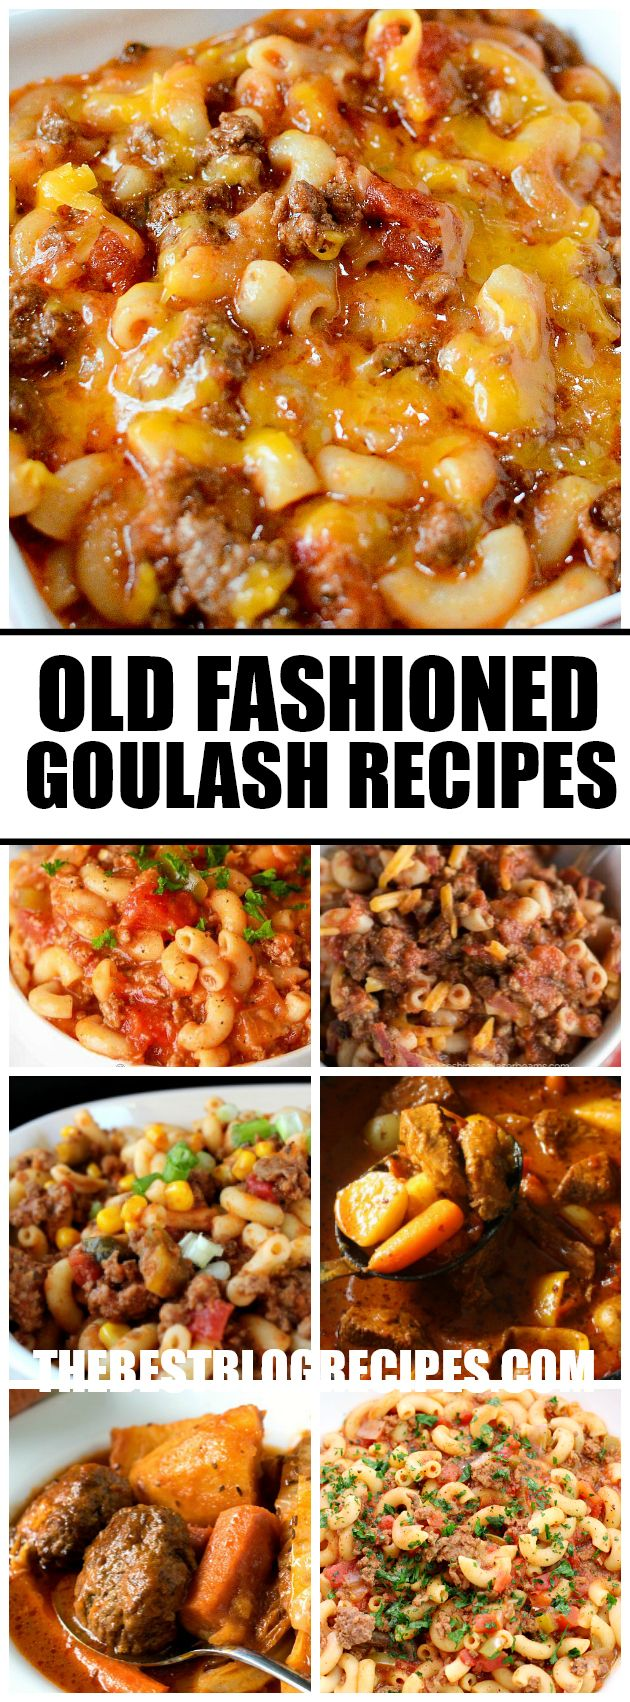 Fashioned Old Incredible Recipes Goulash My